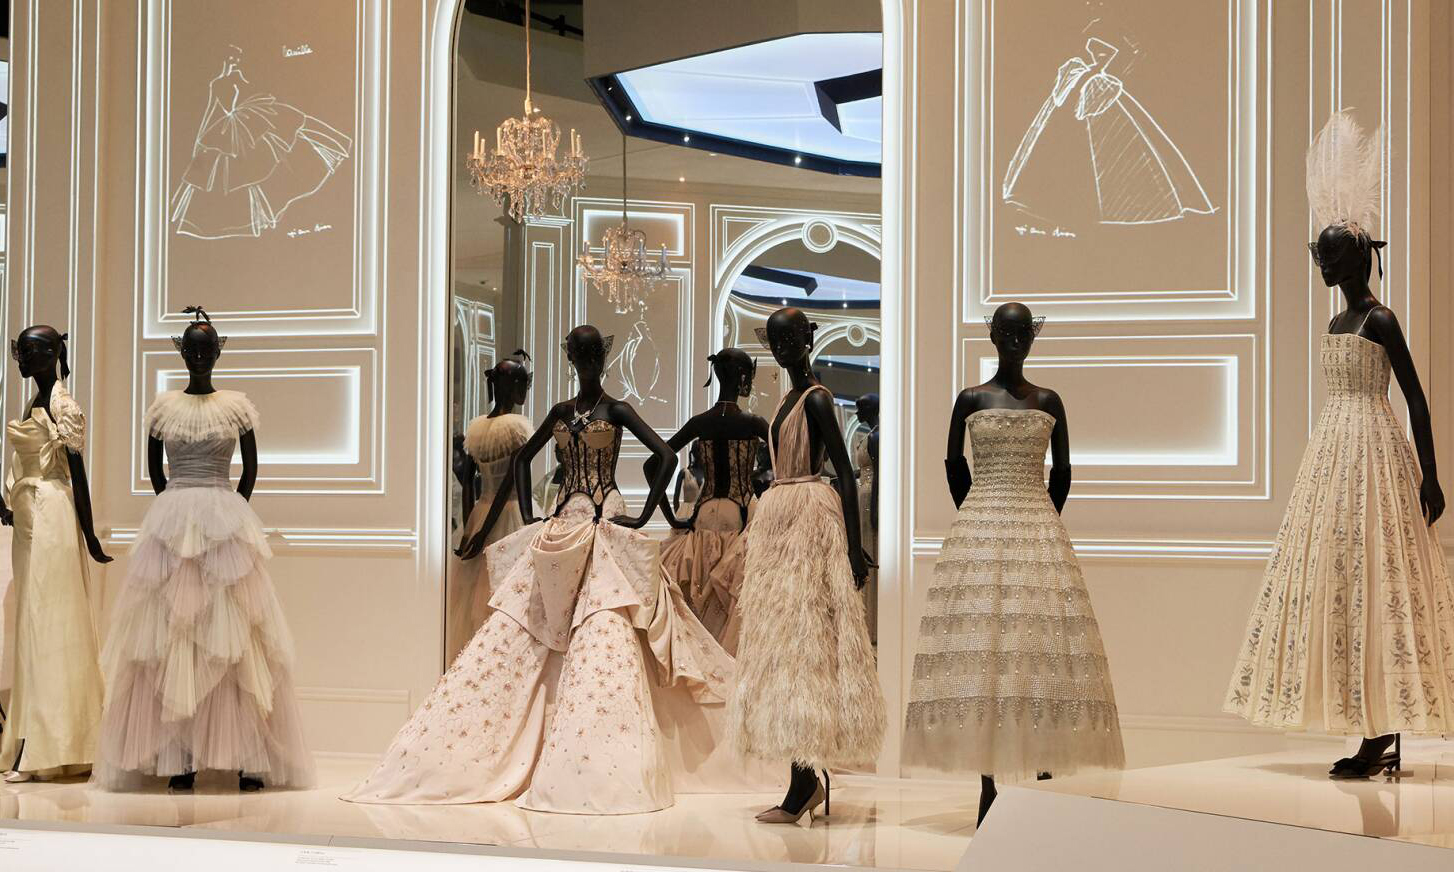 「Christian Dior, Designer of Dreams」展览将来到上海举办